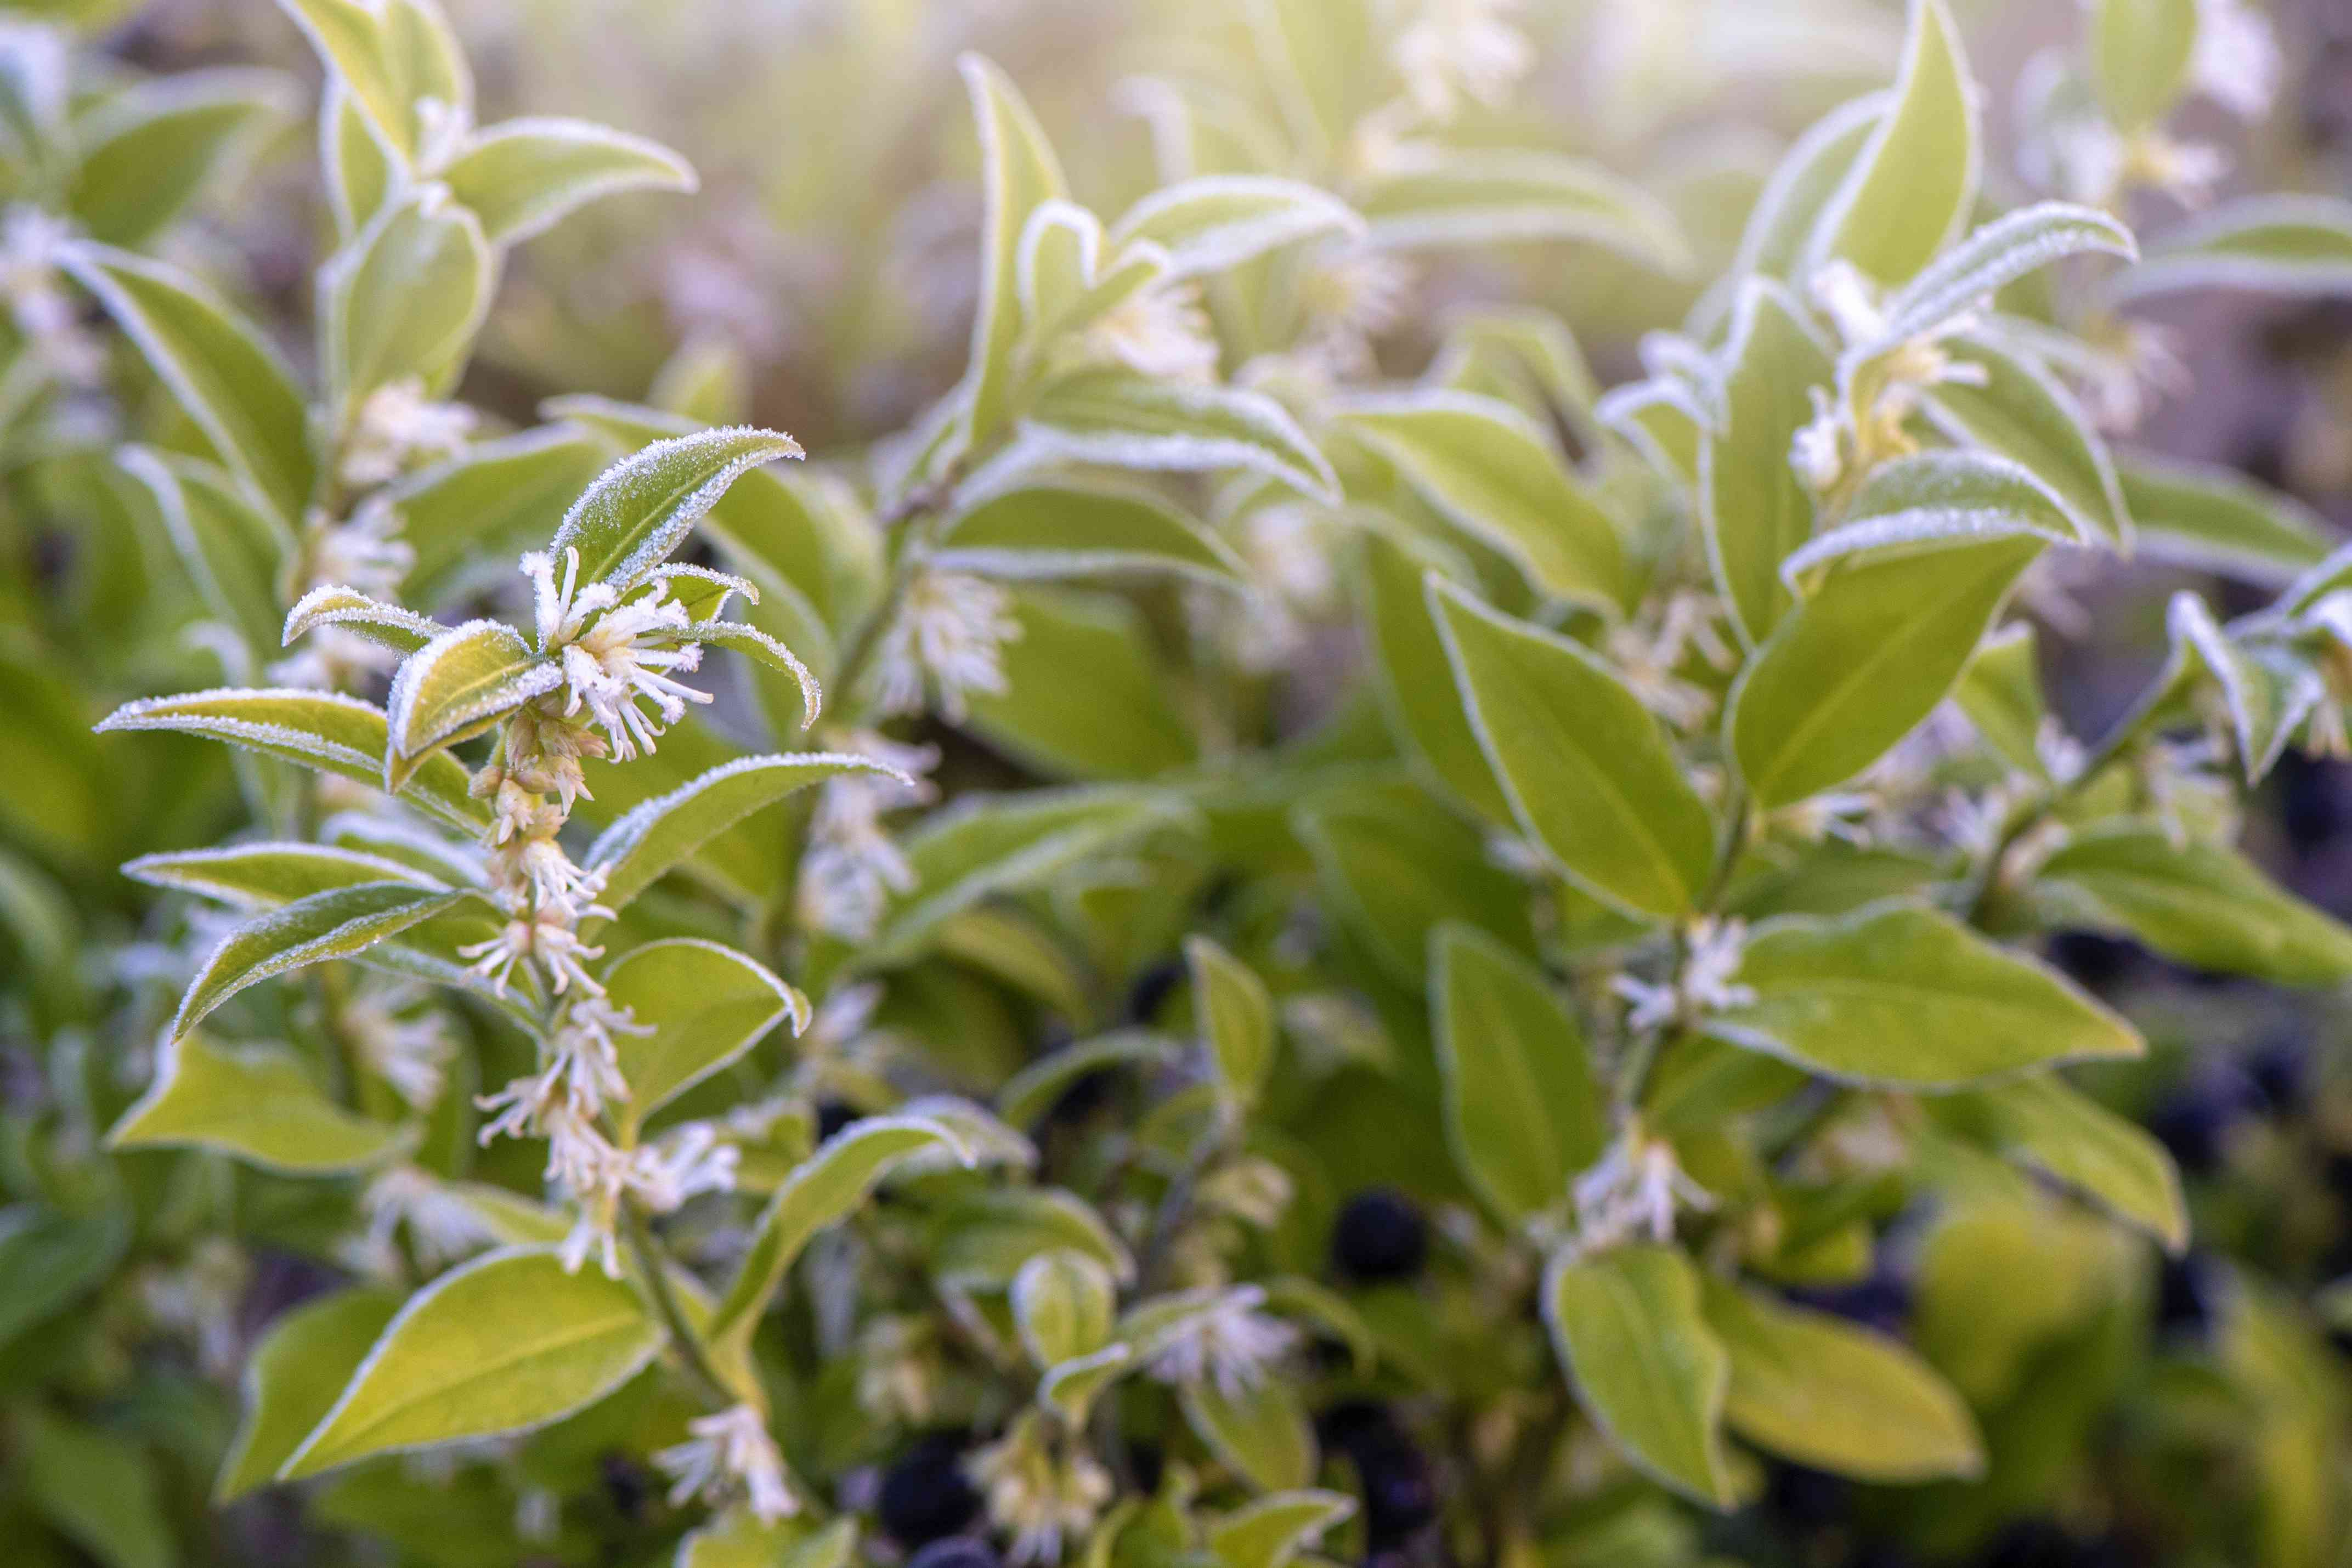 Close-up image of the beautiful winter flowering Sarcococca confusa white flowers